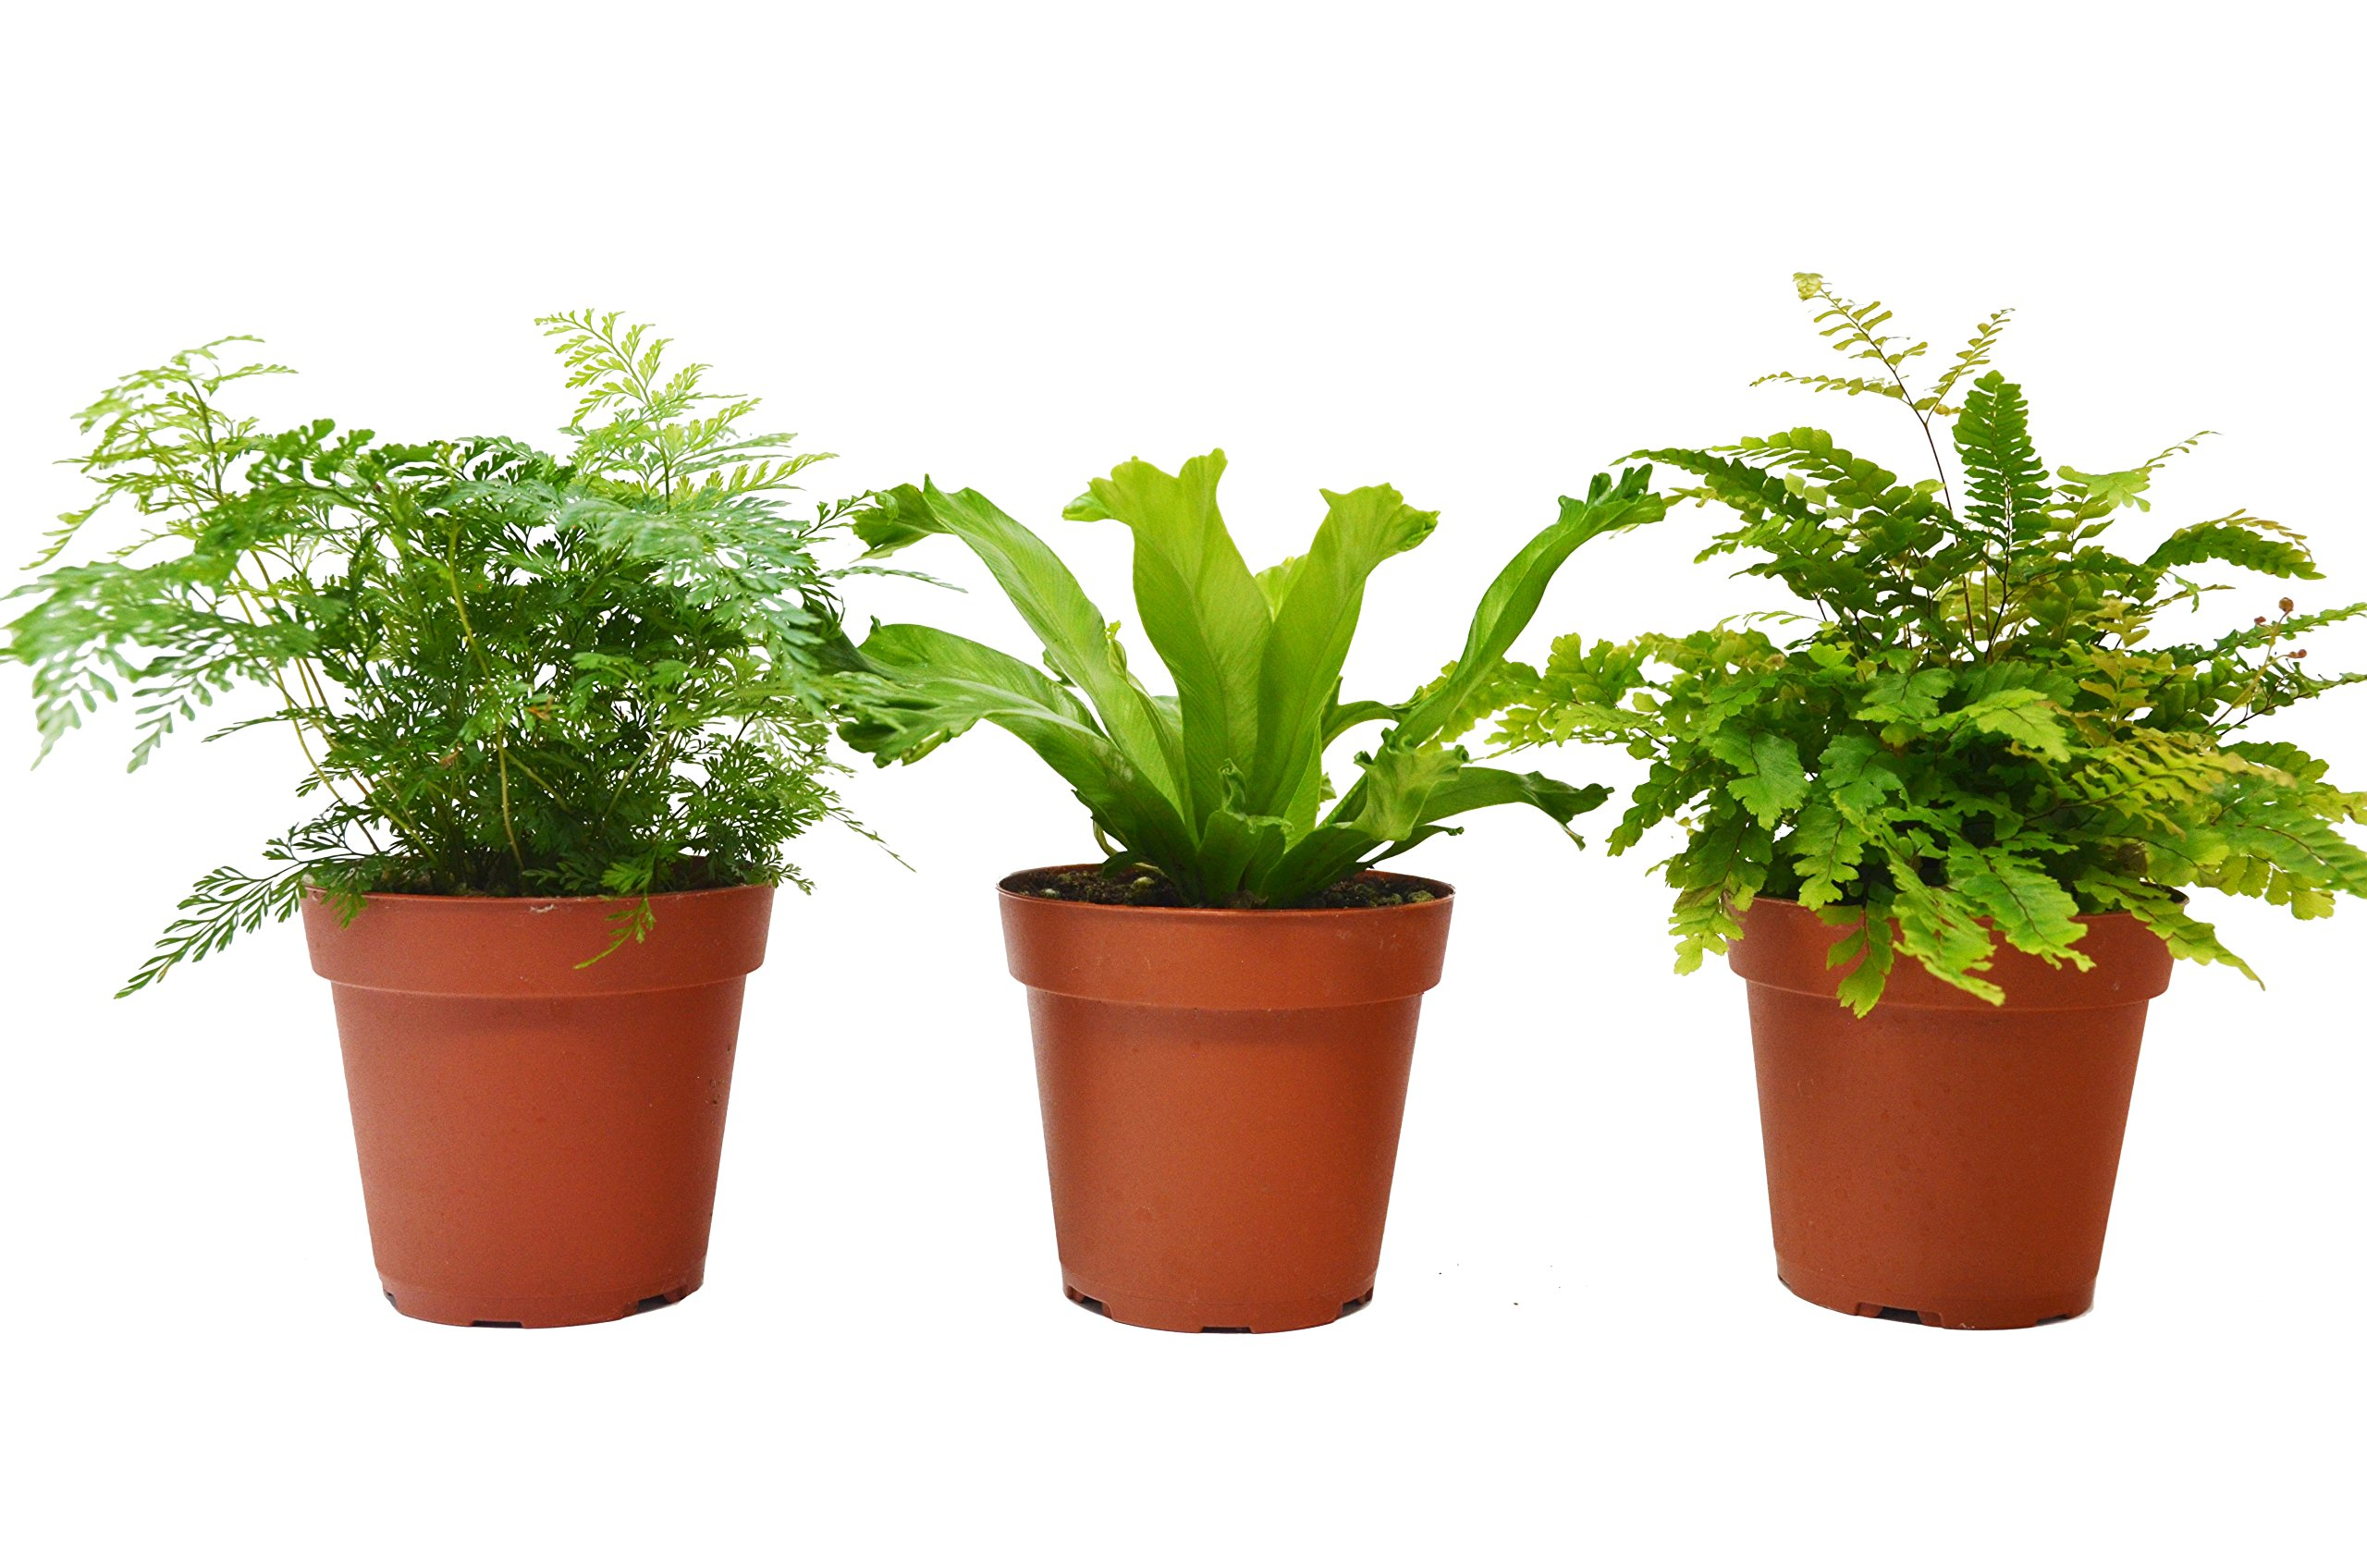 3 Fern Variety Pack - Live Plants - FREE Care Guide - 4'' Pot - Low Light House Plant